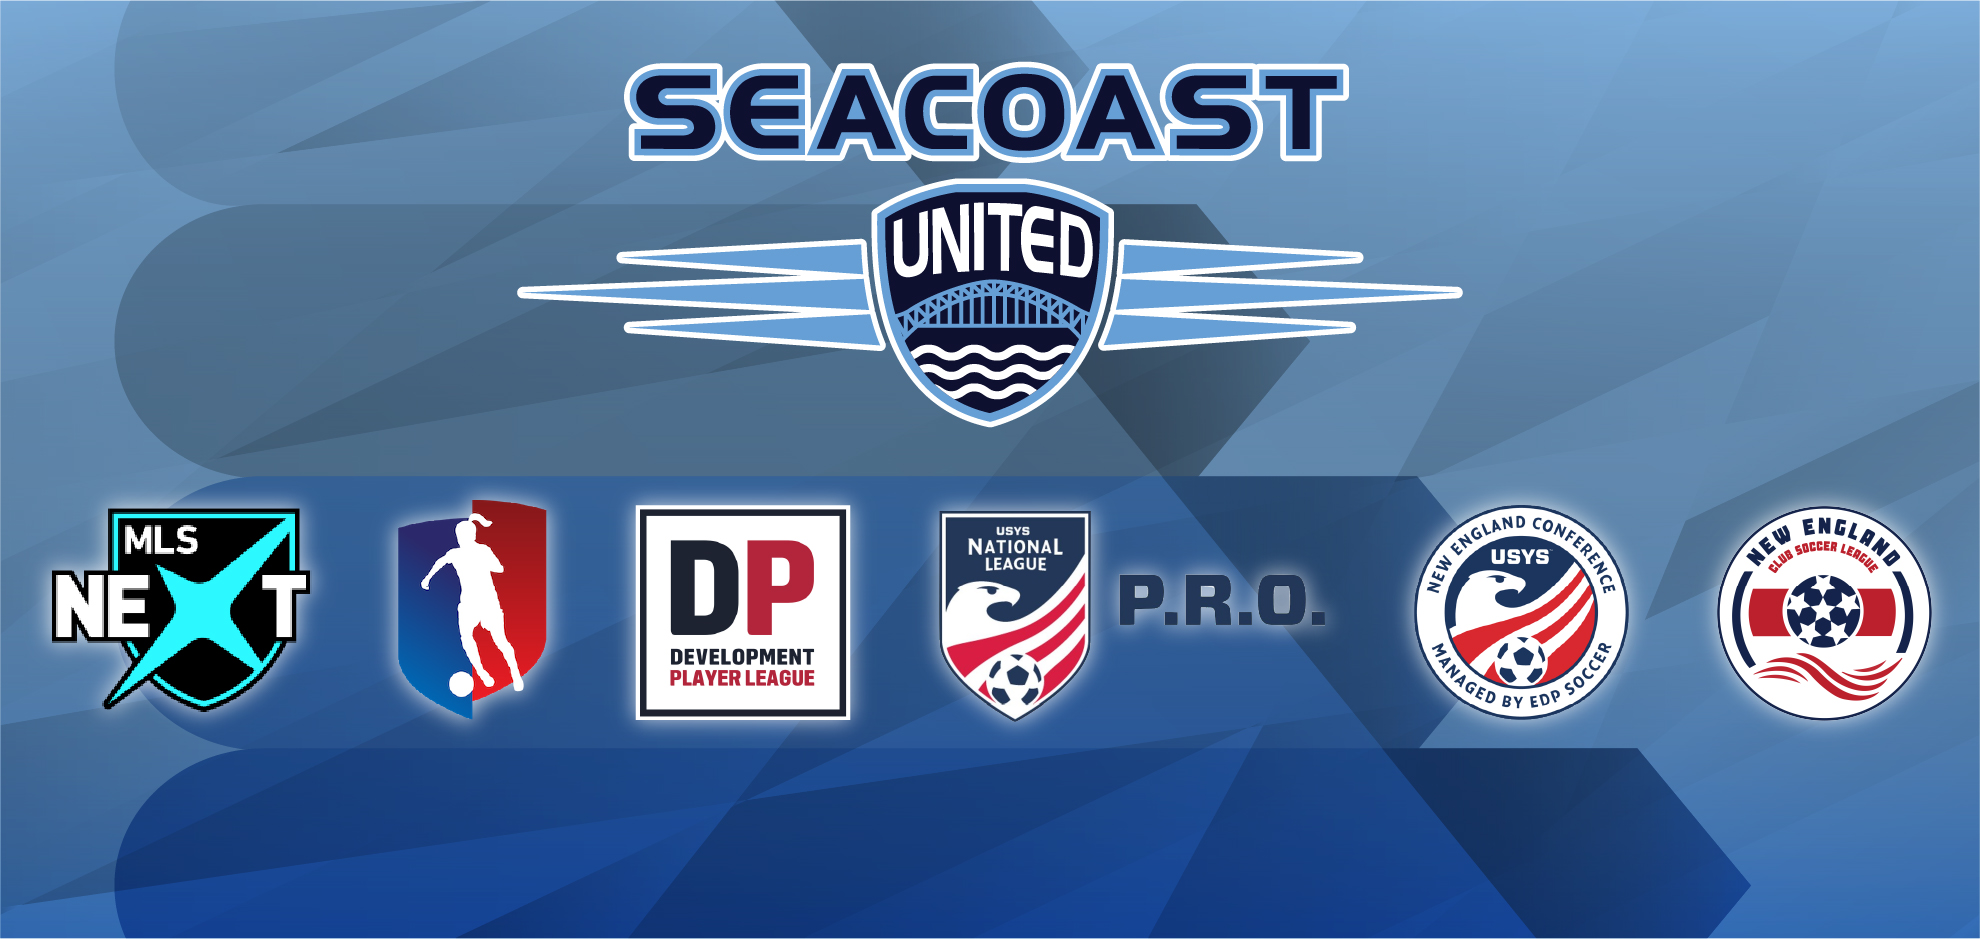 SEACOAST UNITED TO CREATE NEW SOCCER PATHWAYS